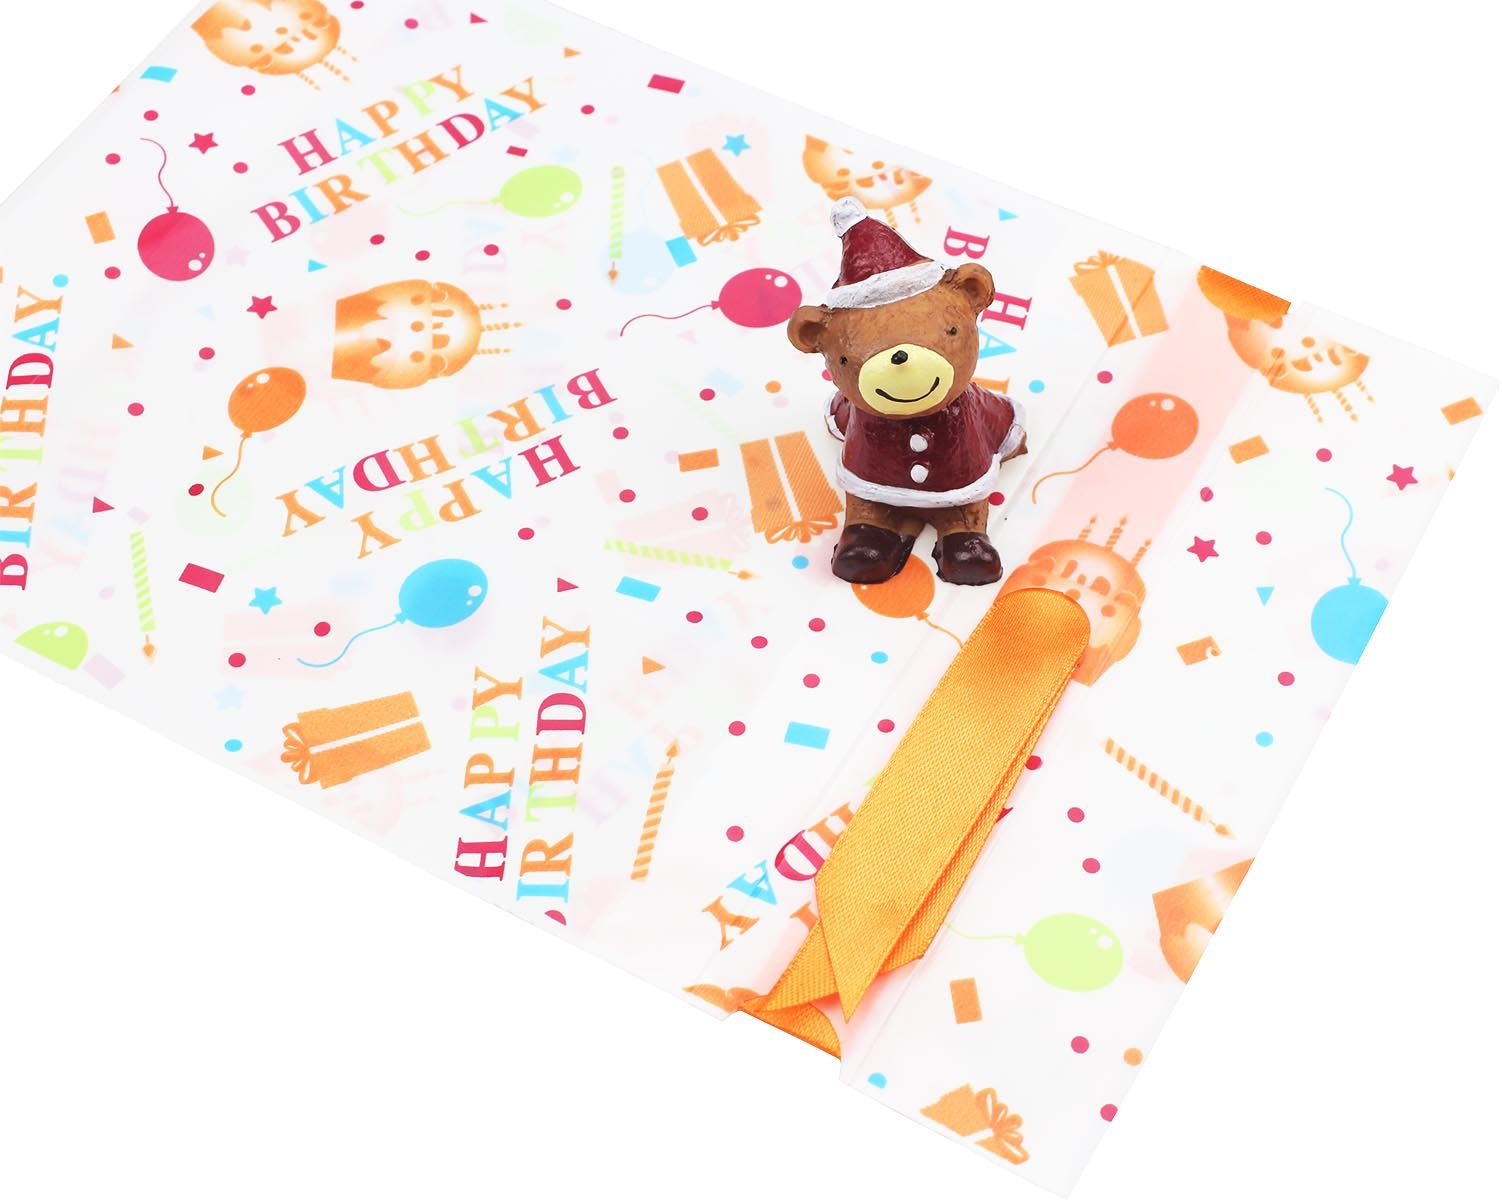 Zealax 15pcs Happy Birthday Theme Party Favors Treat Bags Gift Wrapping Drawstring Plastic Goodies Package Bags Baby Shower Decorations Ideas, 6 inches x 9 inches